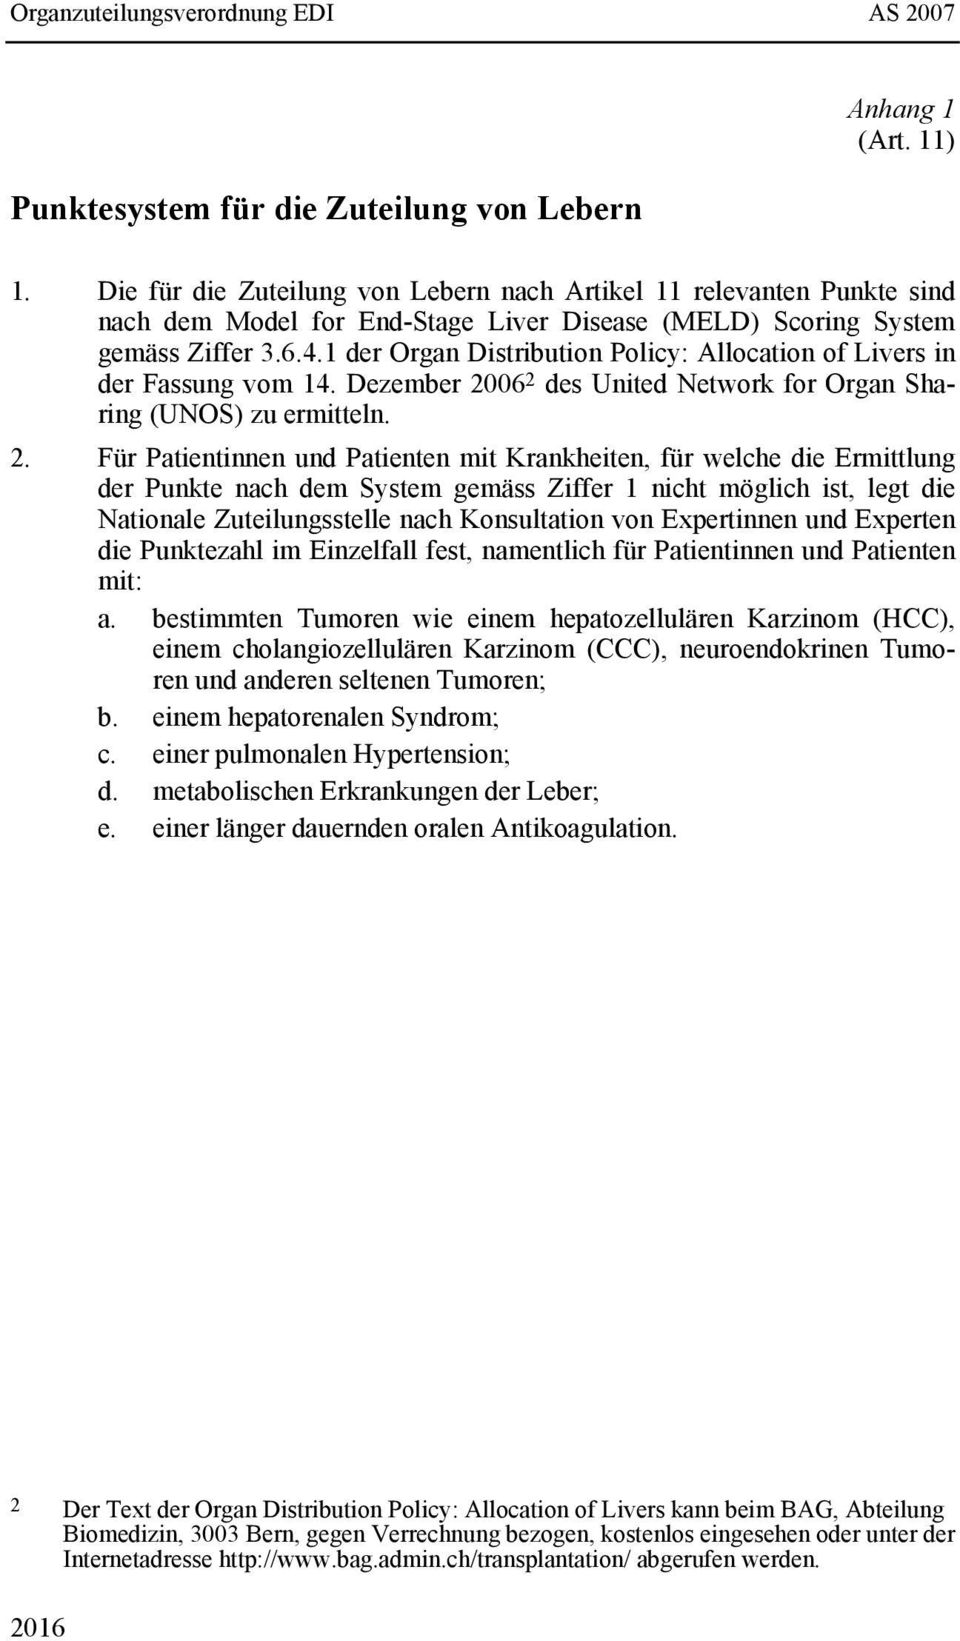 1 der Organ Distribution Policy: Allocation of Livers in der Fassung vom 14. Dezember 20